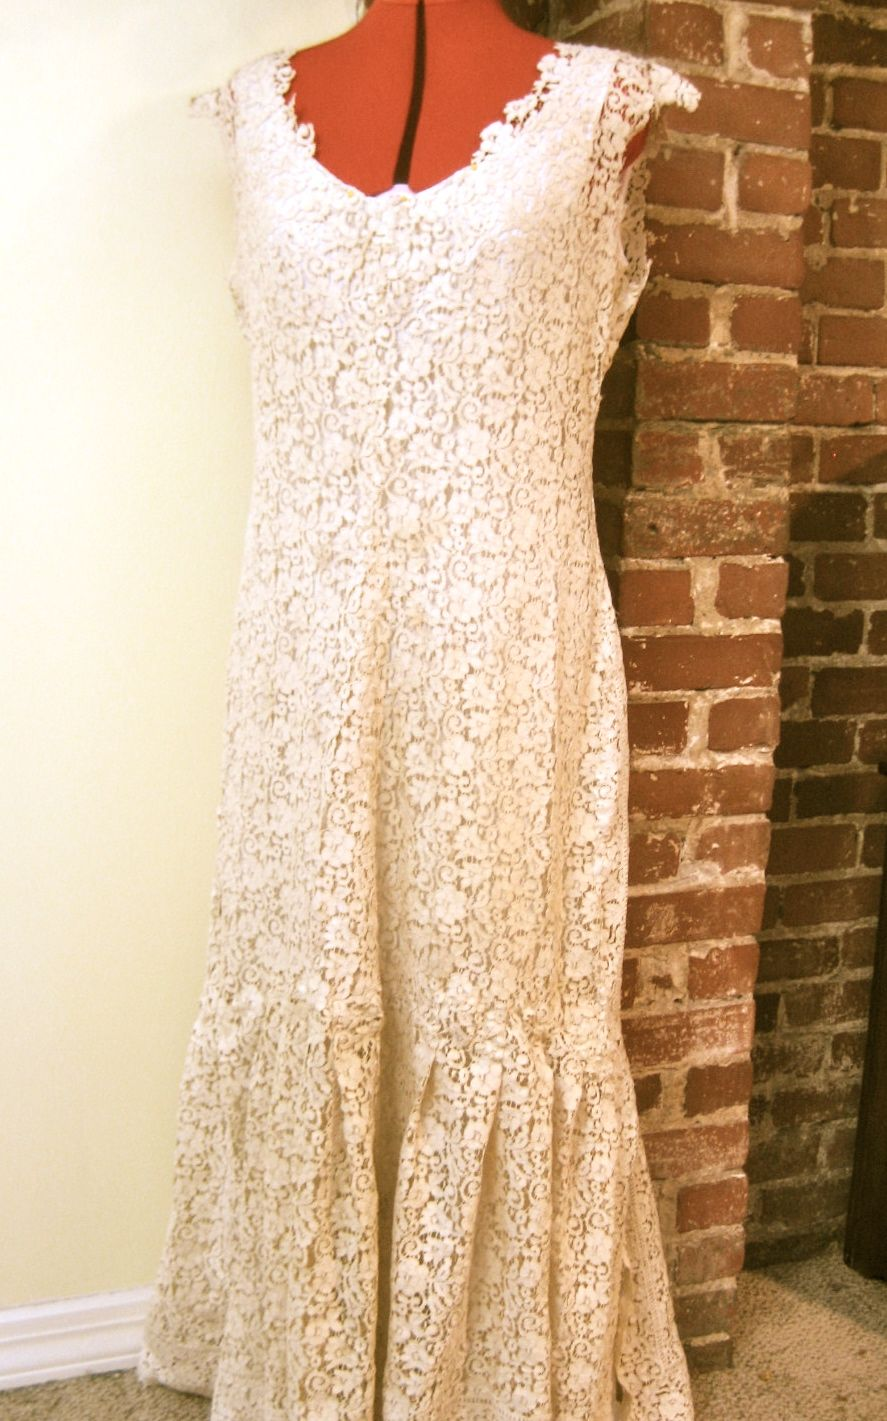 This upcycled wedding dress is made from an antique lace table